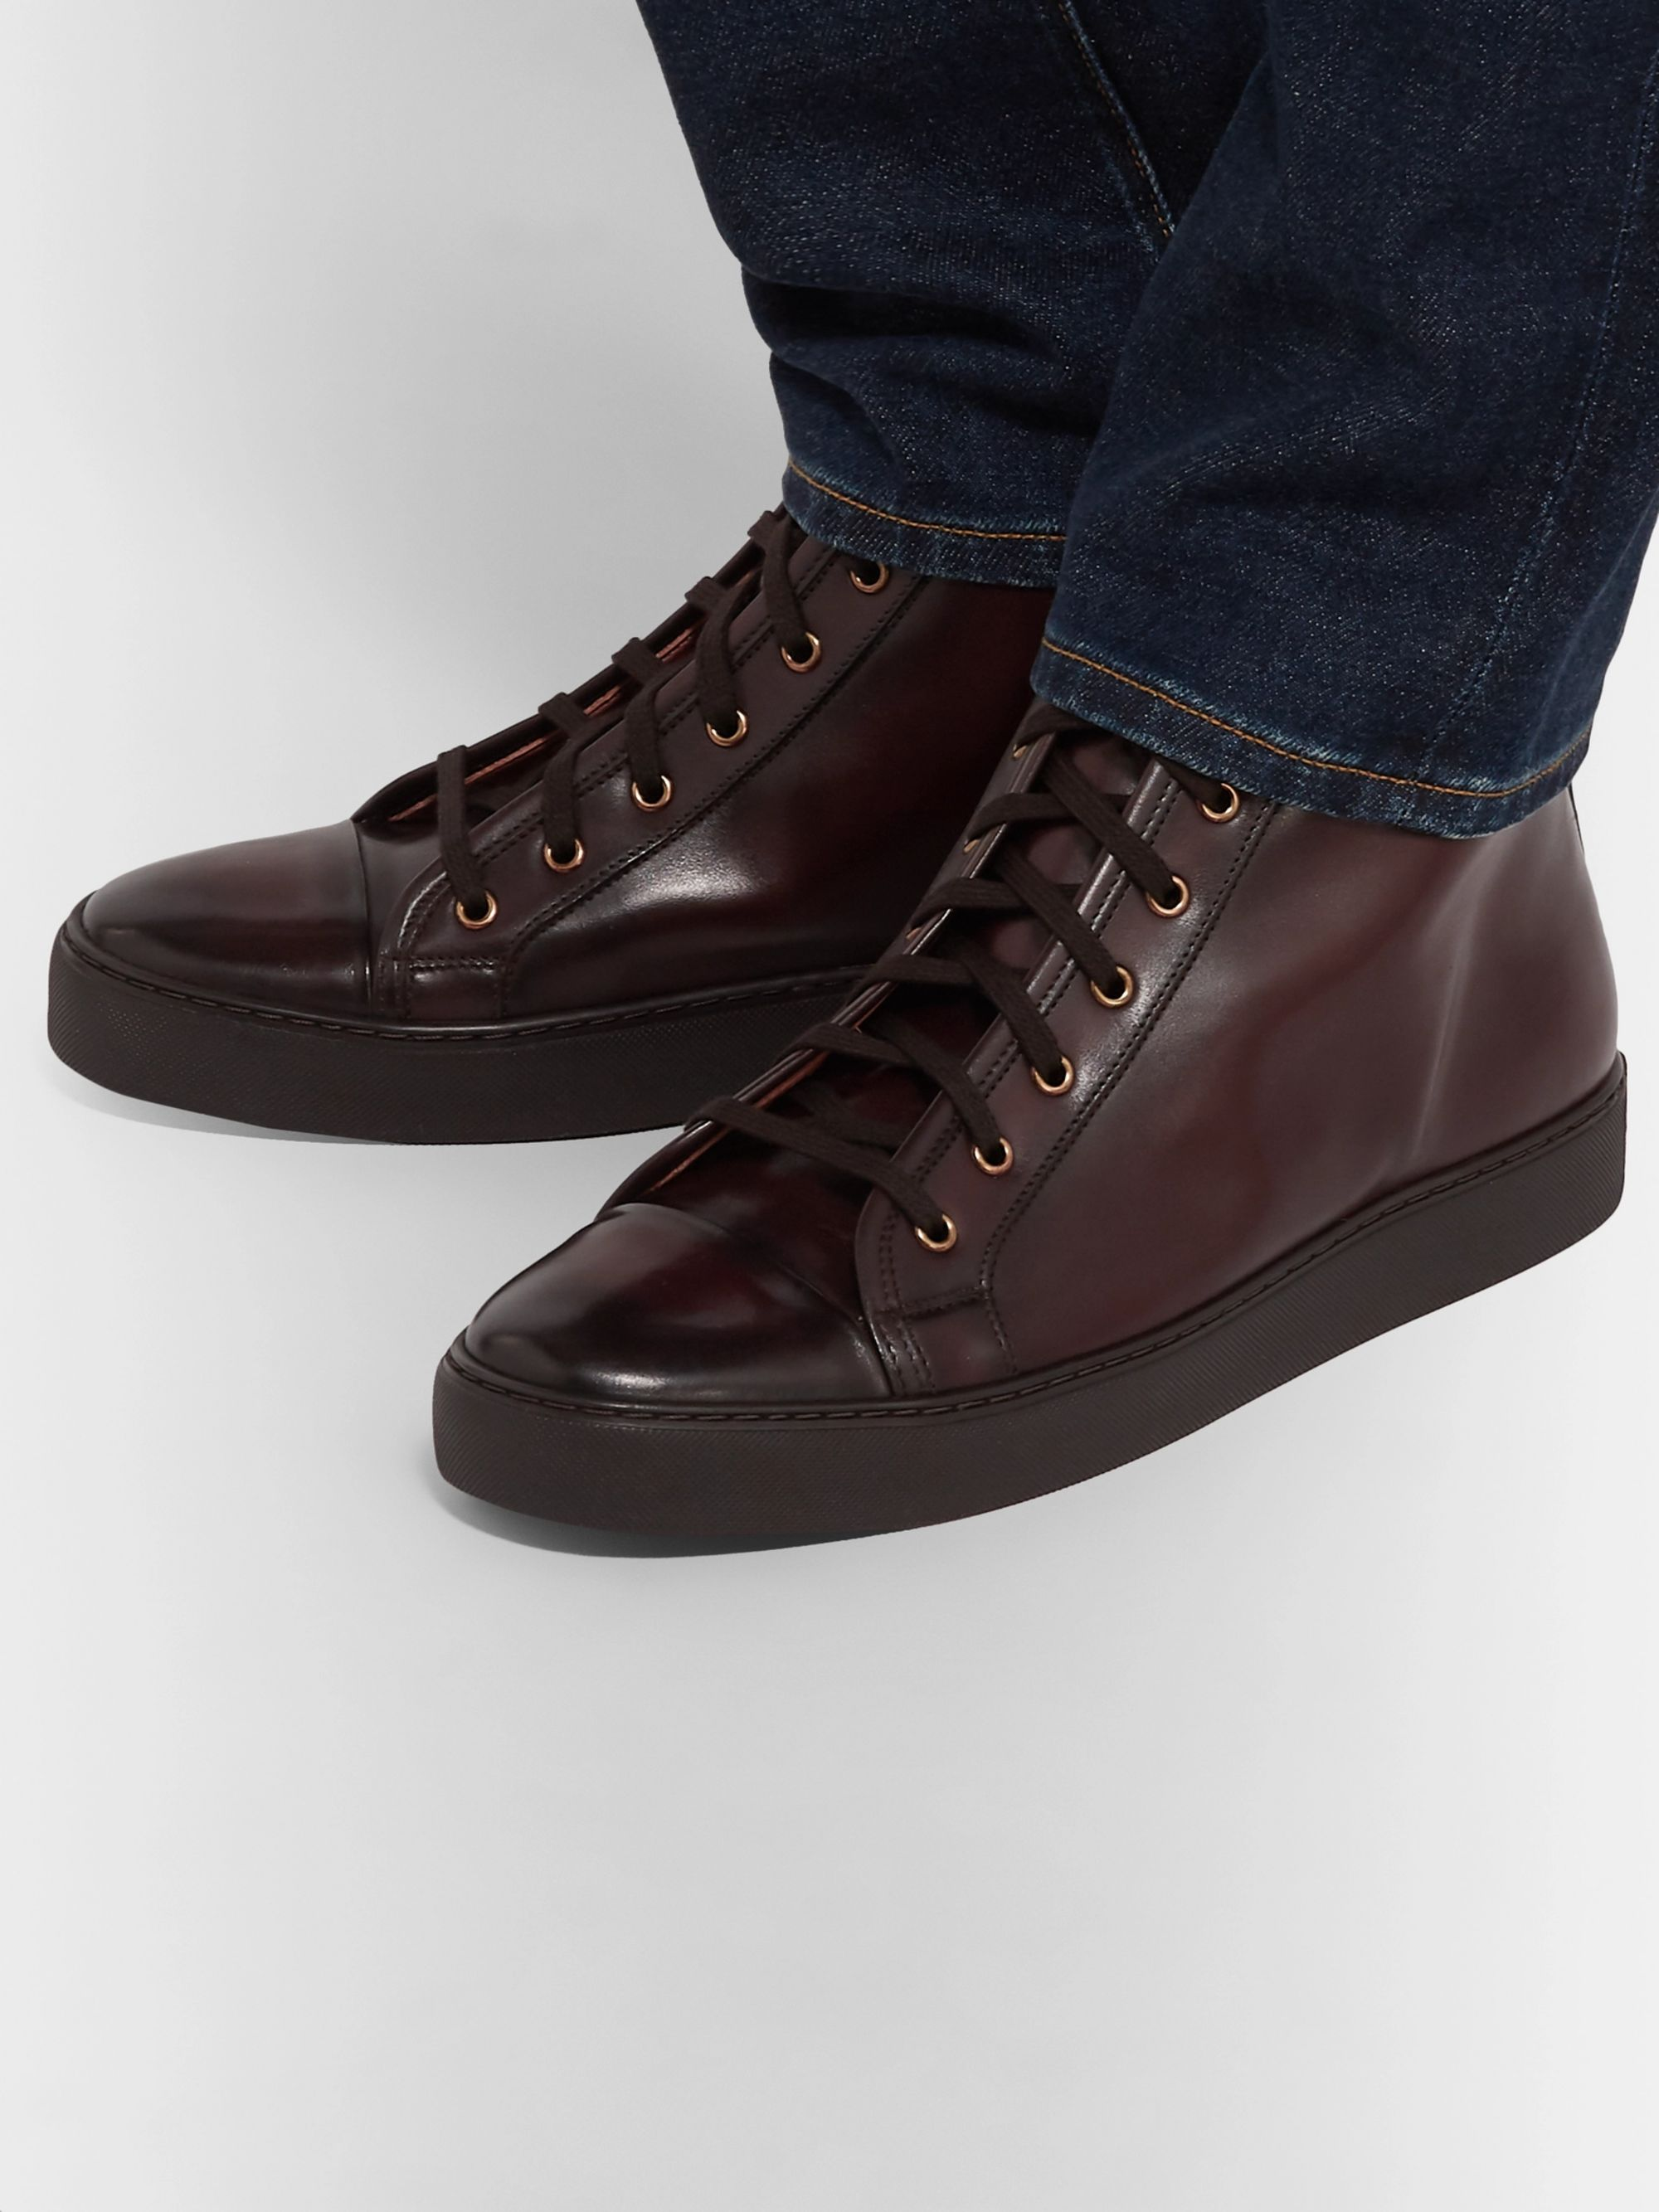 Ralph Lauren Purple Label Burnished-Leather High-Top Sneakers